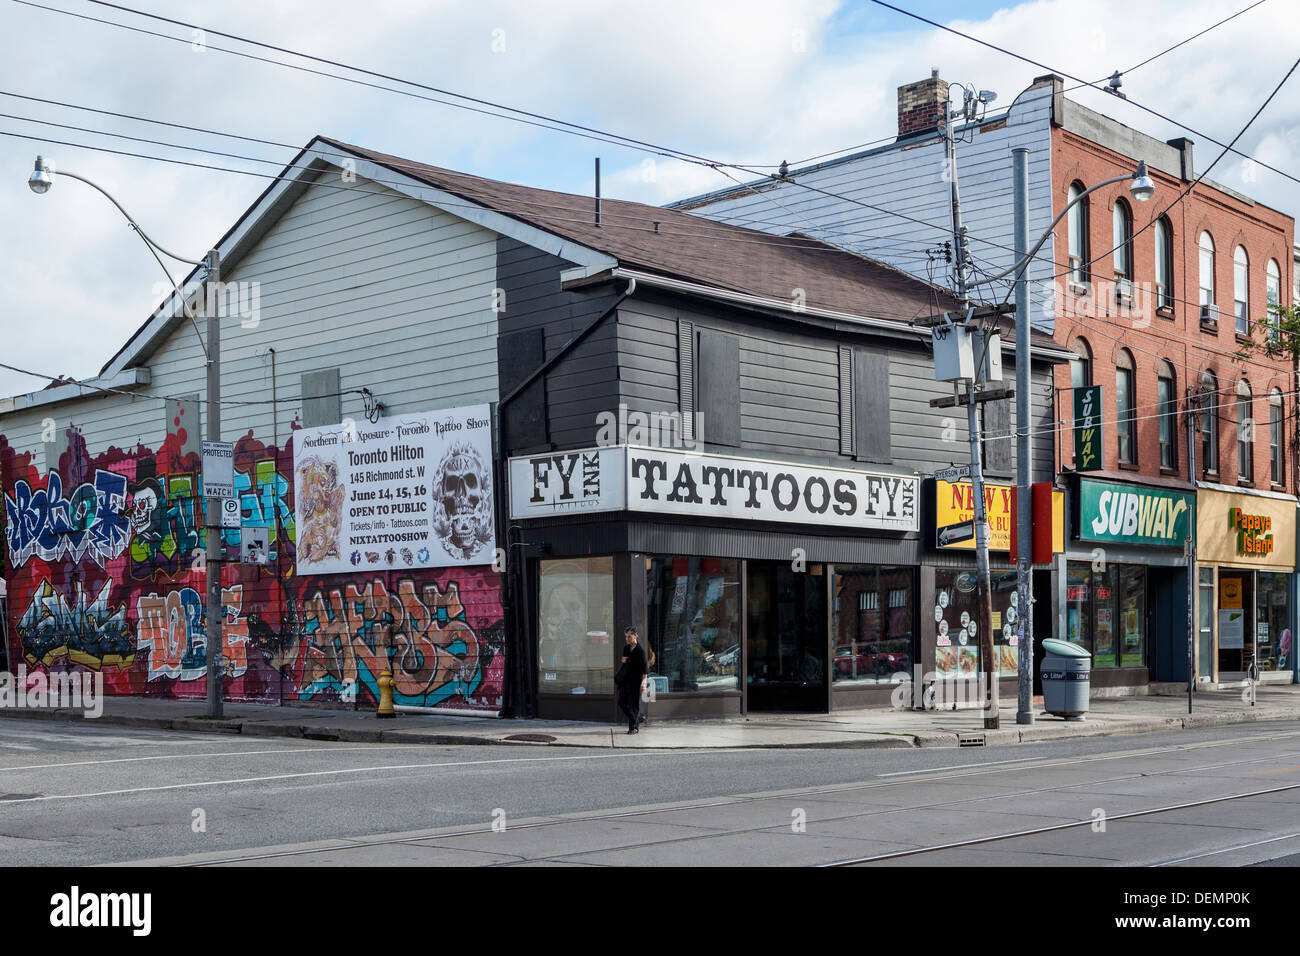 tattoo parlour stockfotos tattoo parlour bilder alamy. Black Bedroom Furniture Sets. Home Design Ideas